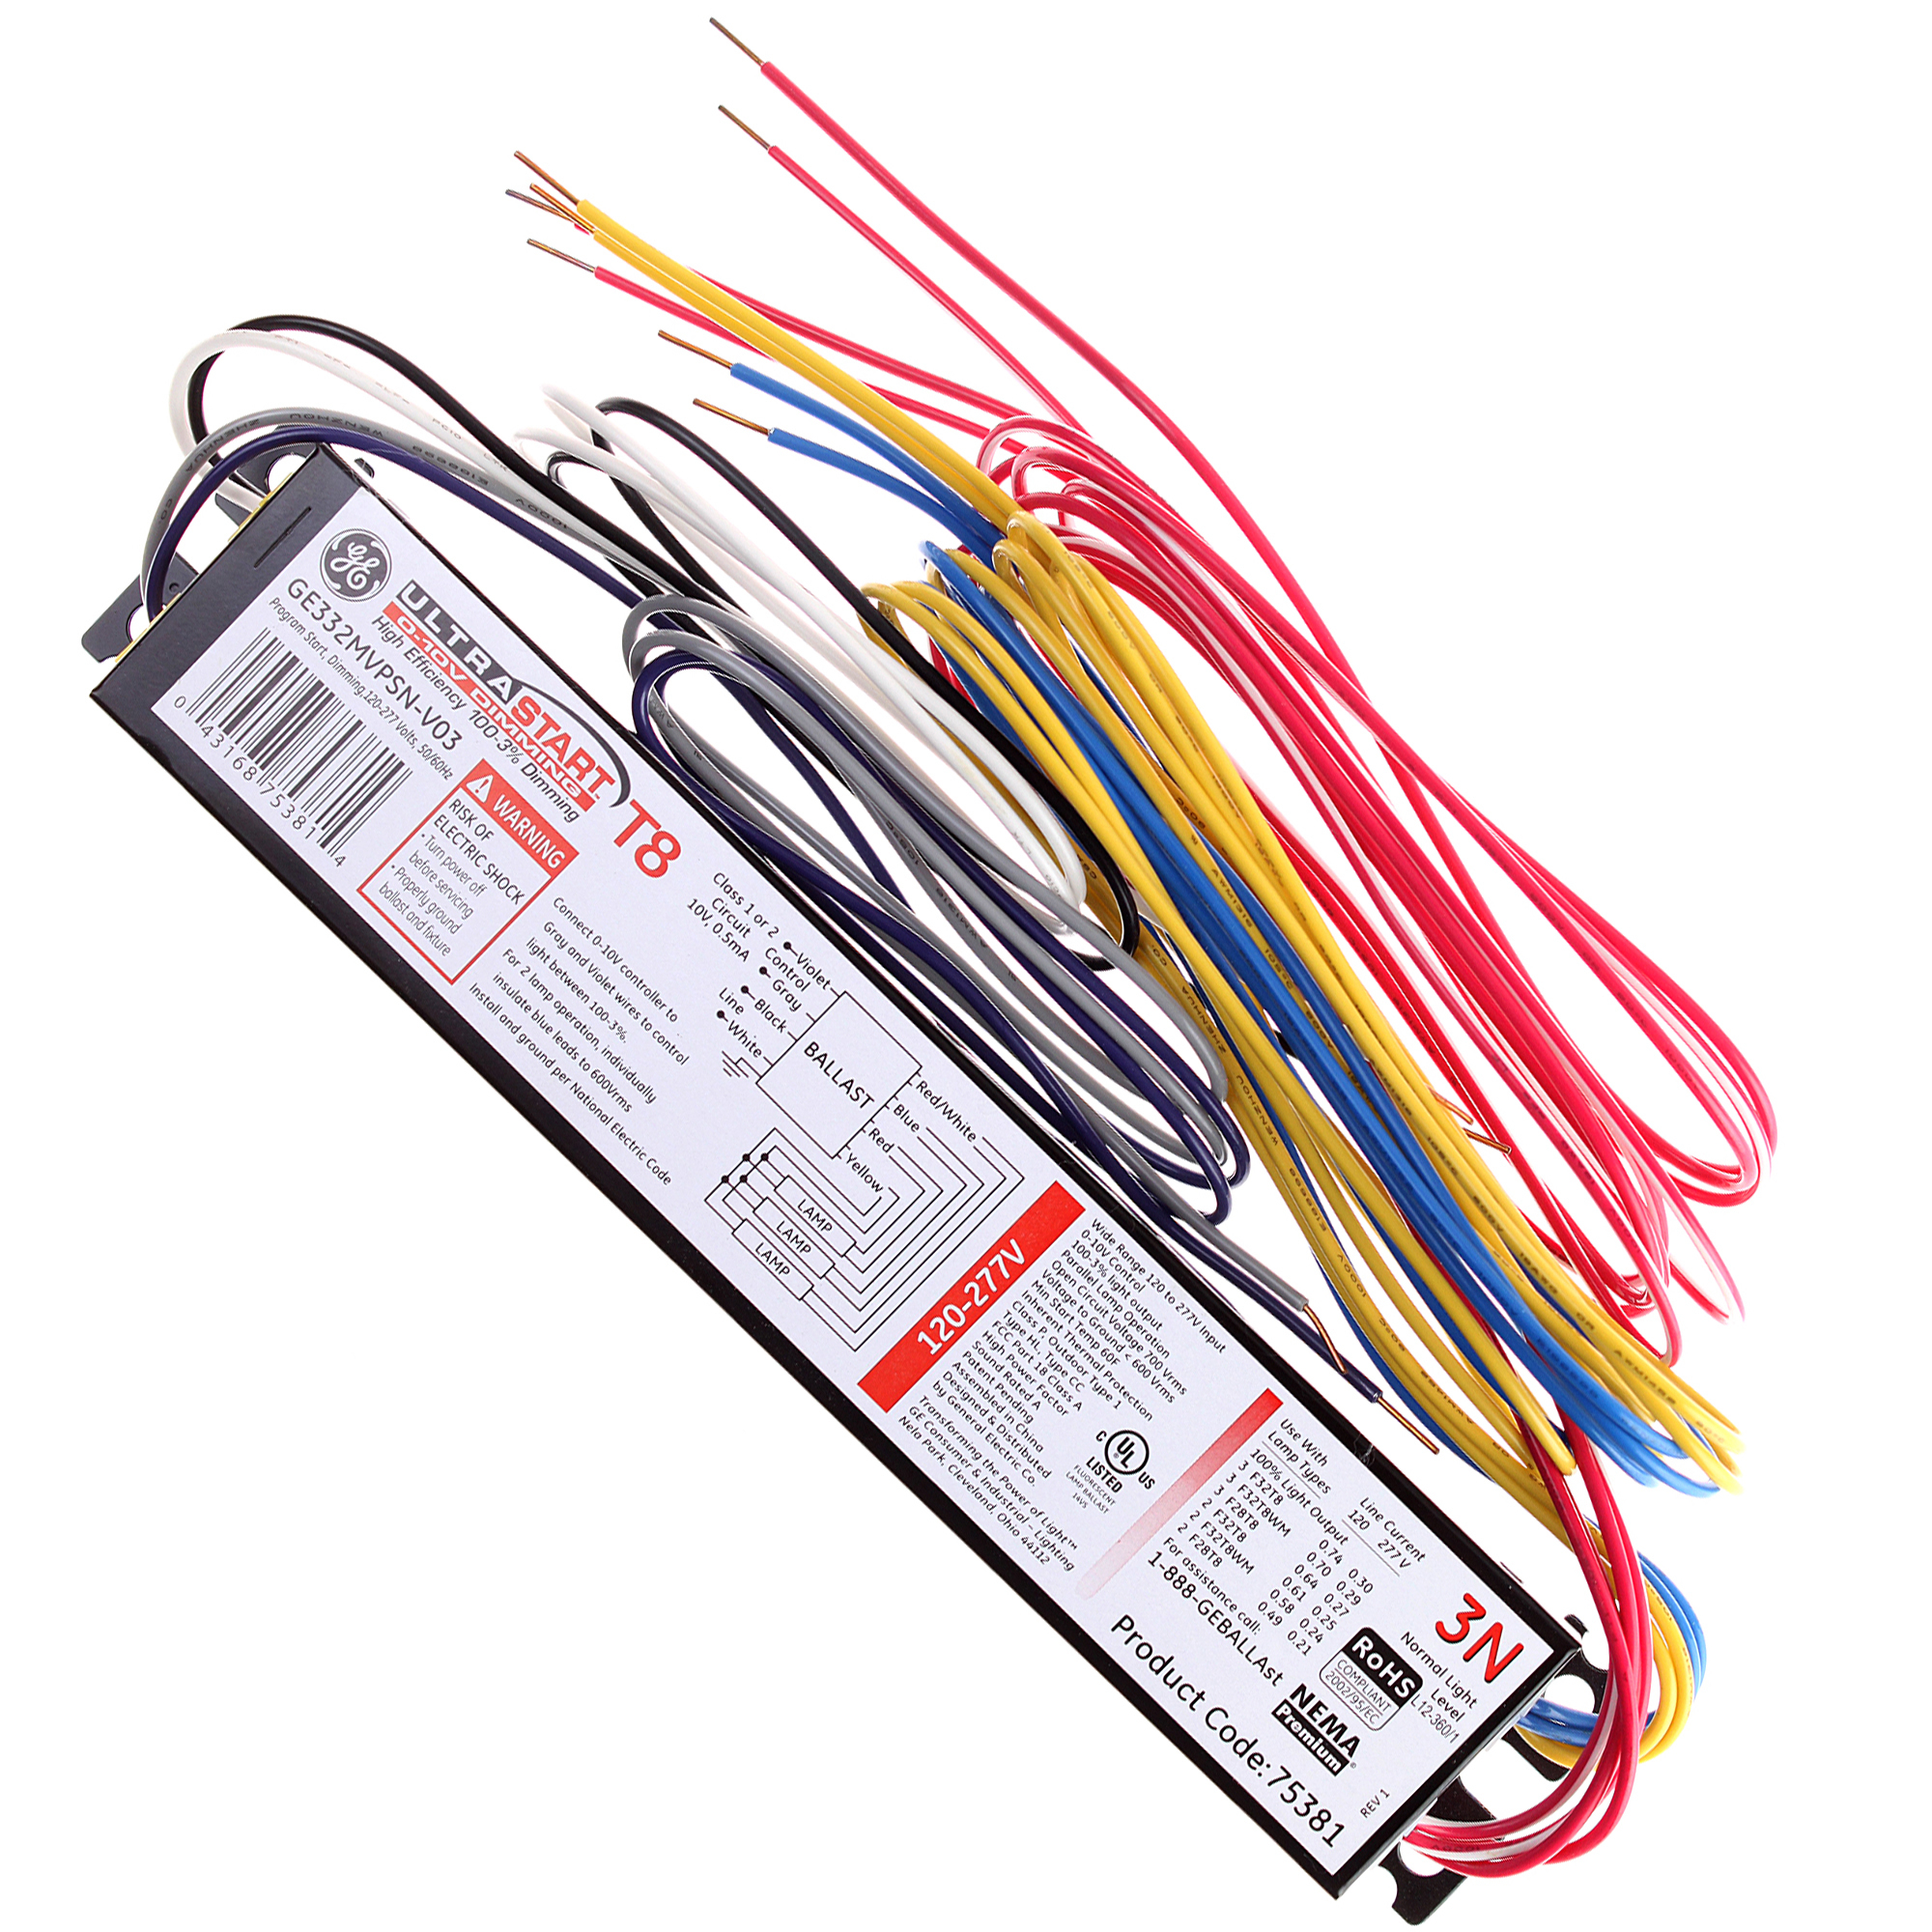 GEGE332MVPS N V03 A?resize\=665%2C665 ge proline t12 ballast wiring diagram wiring diagrams Home Electrical Wiring Diagrams at gsmportal.co